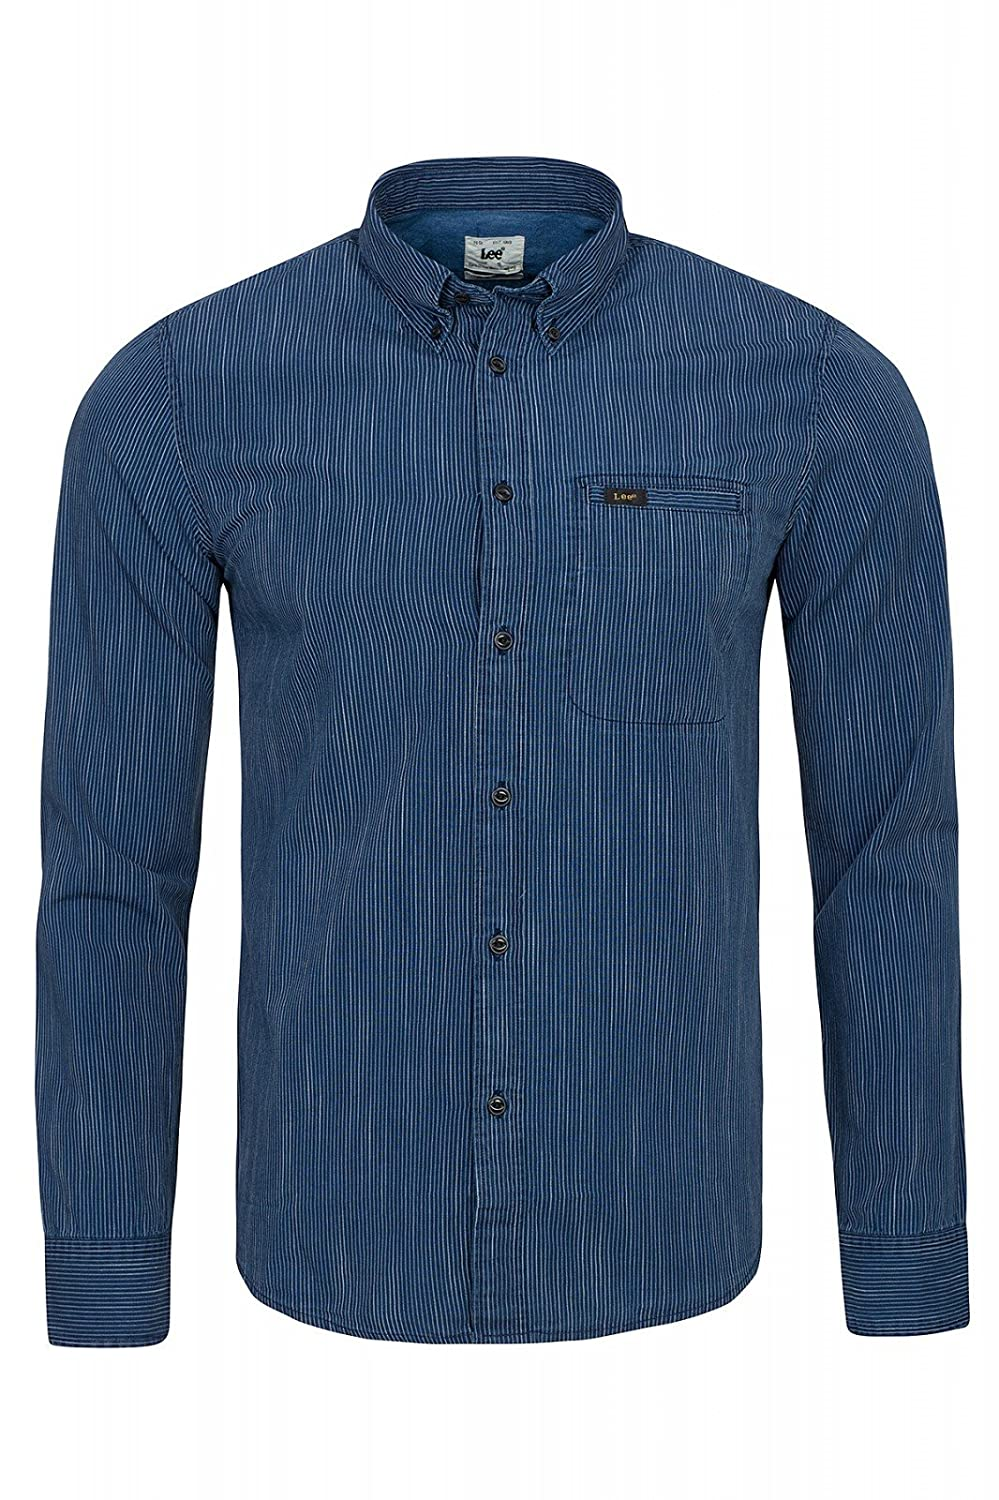 TALLA S. Lee Button Down Camisa para Hombre